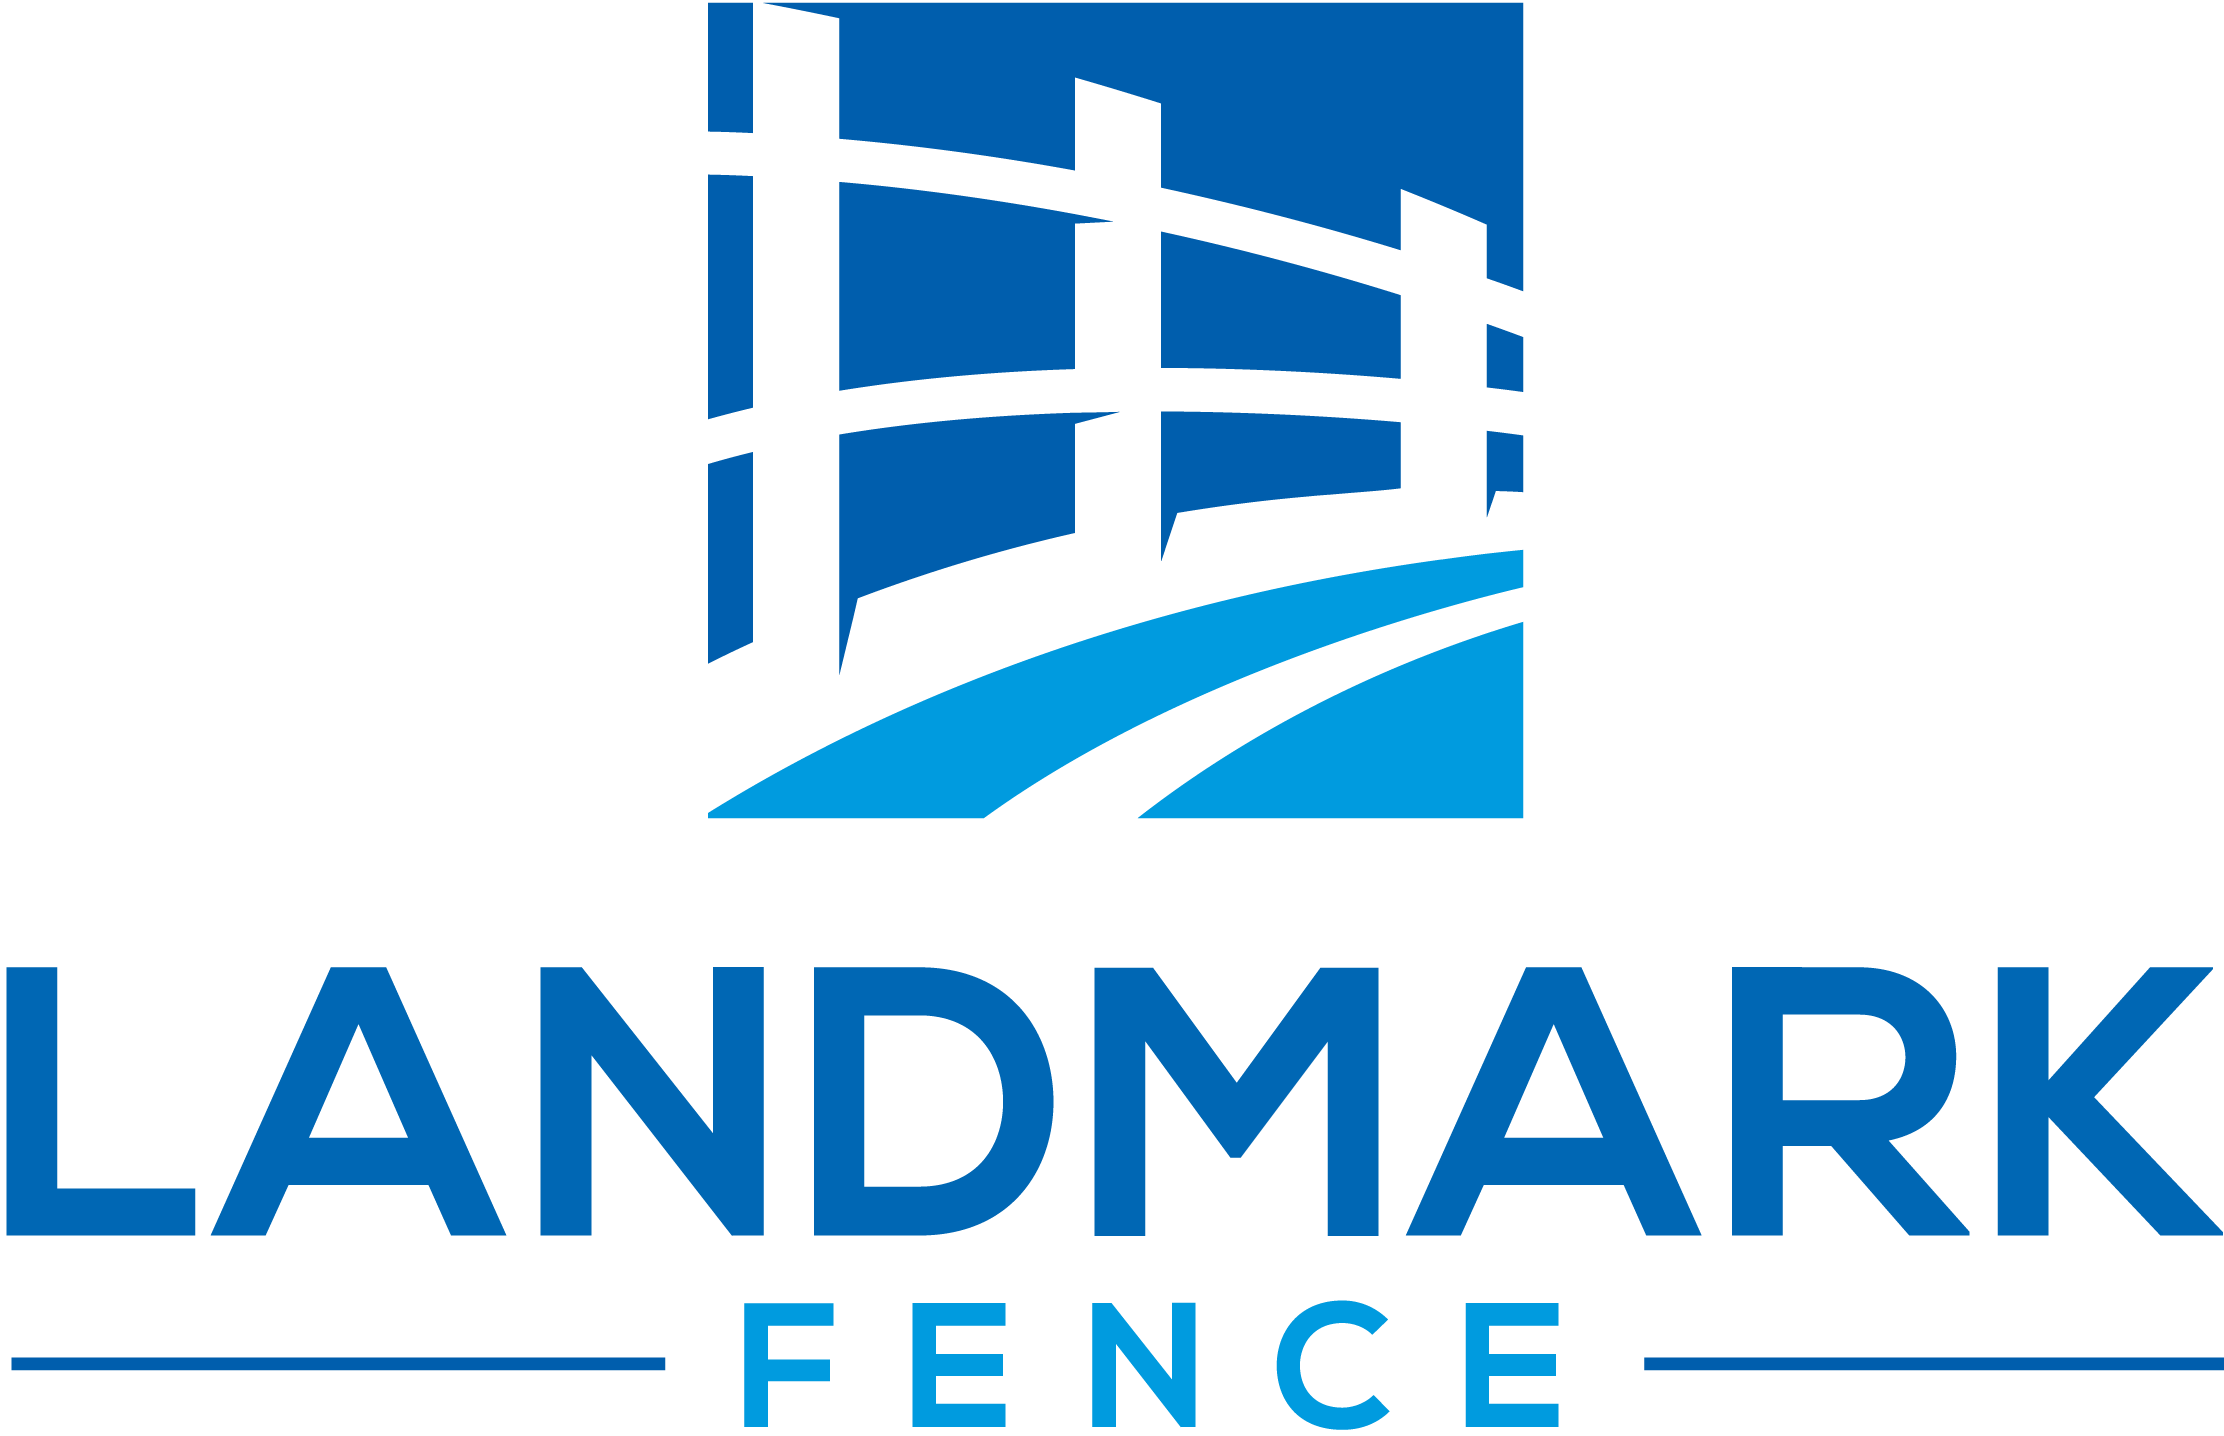 Landmark Fence_Final-01 REVISED.png